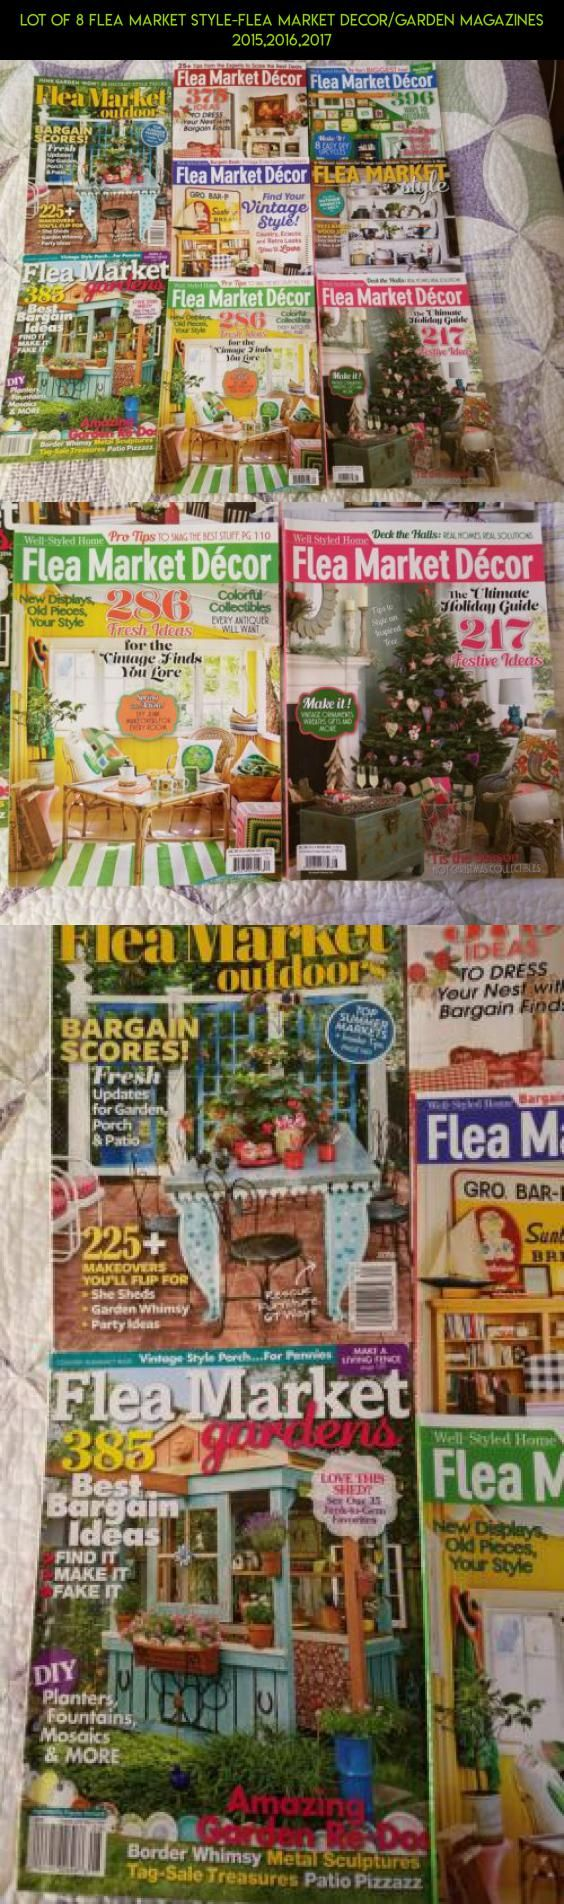 Lot Of 8 Flea Market Style-Flea Market Decor/Garden Magazines 2015,2016,2017 #shopping #parts #gadgets #fpv #drone #gardening #tech #magazines #camera #kit #technology #products #racing #plans